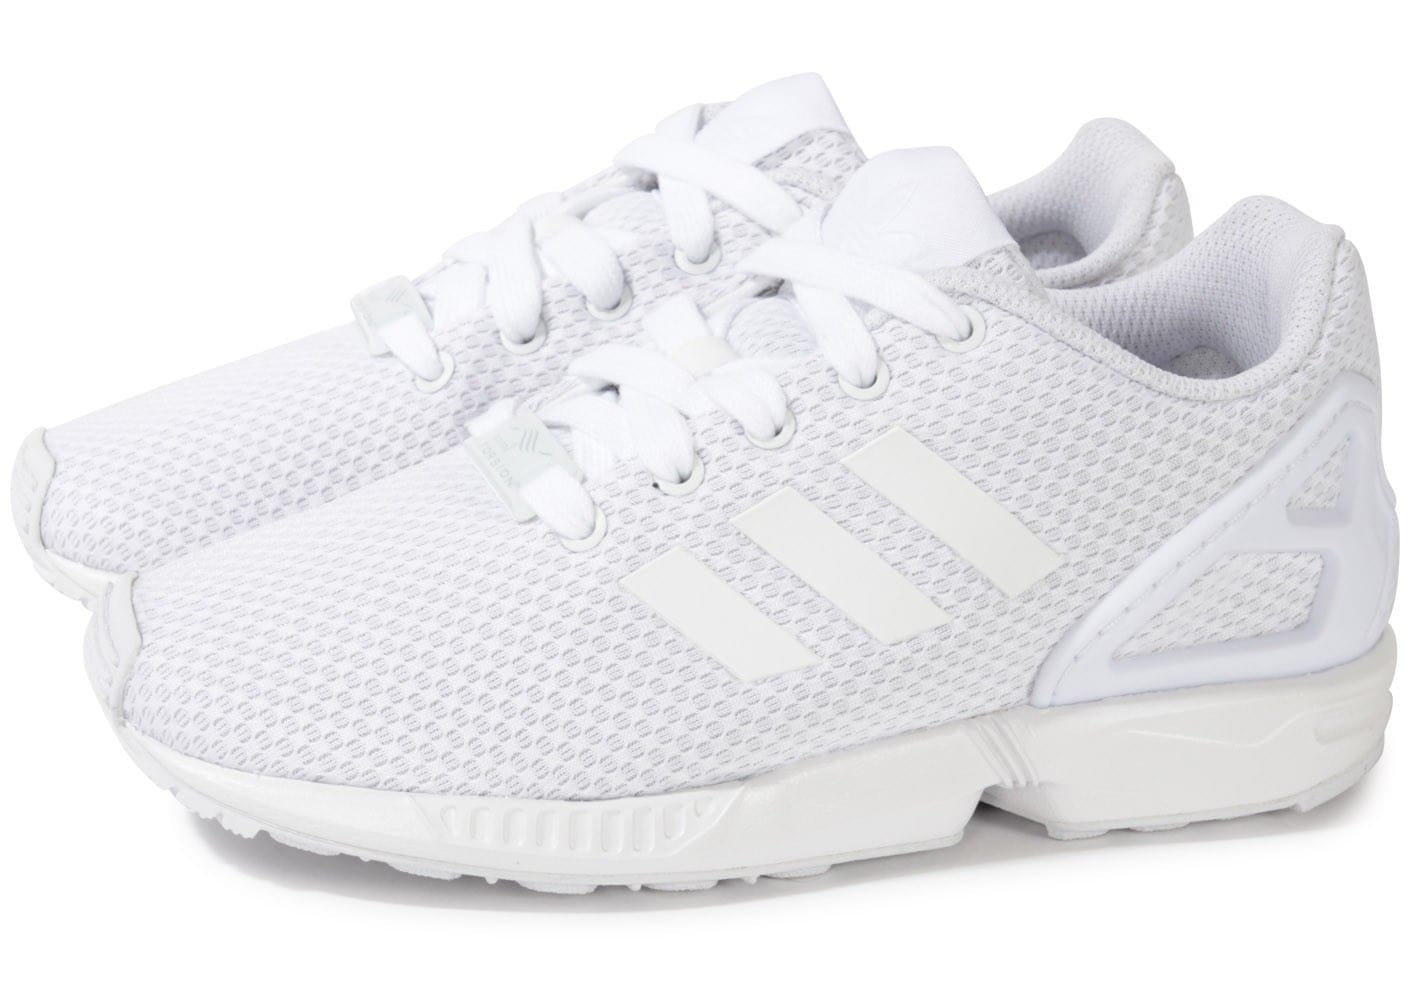 Chaussures Adidas ZX Flux blanches 10lixtoYZv